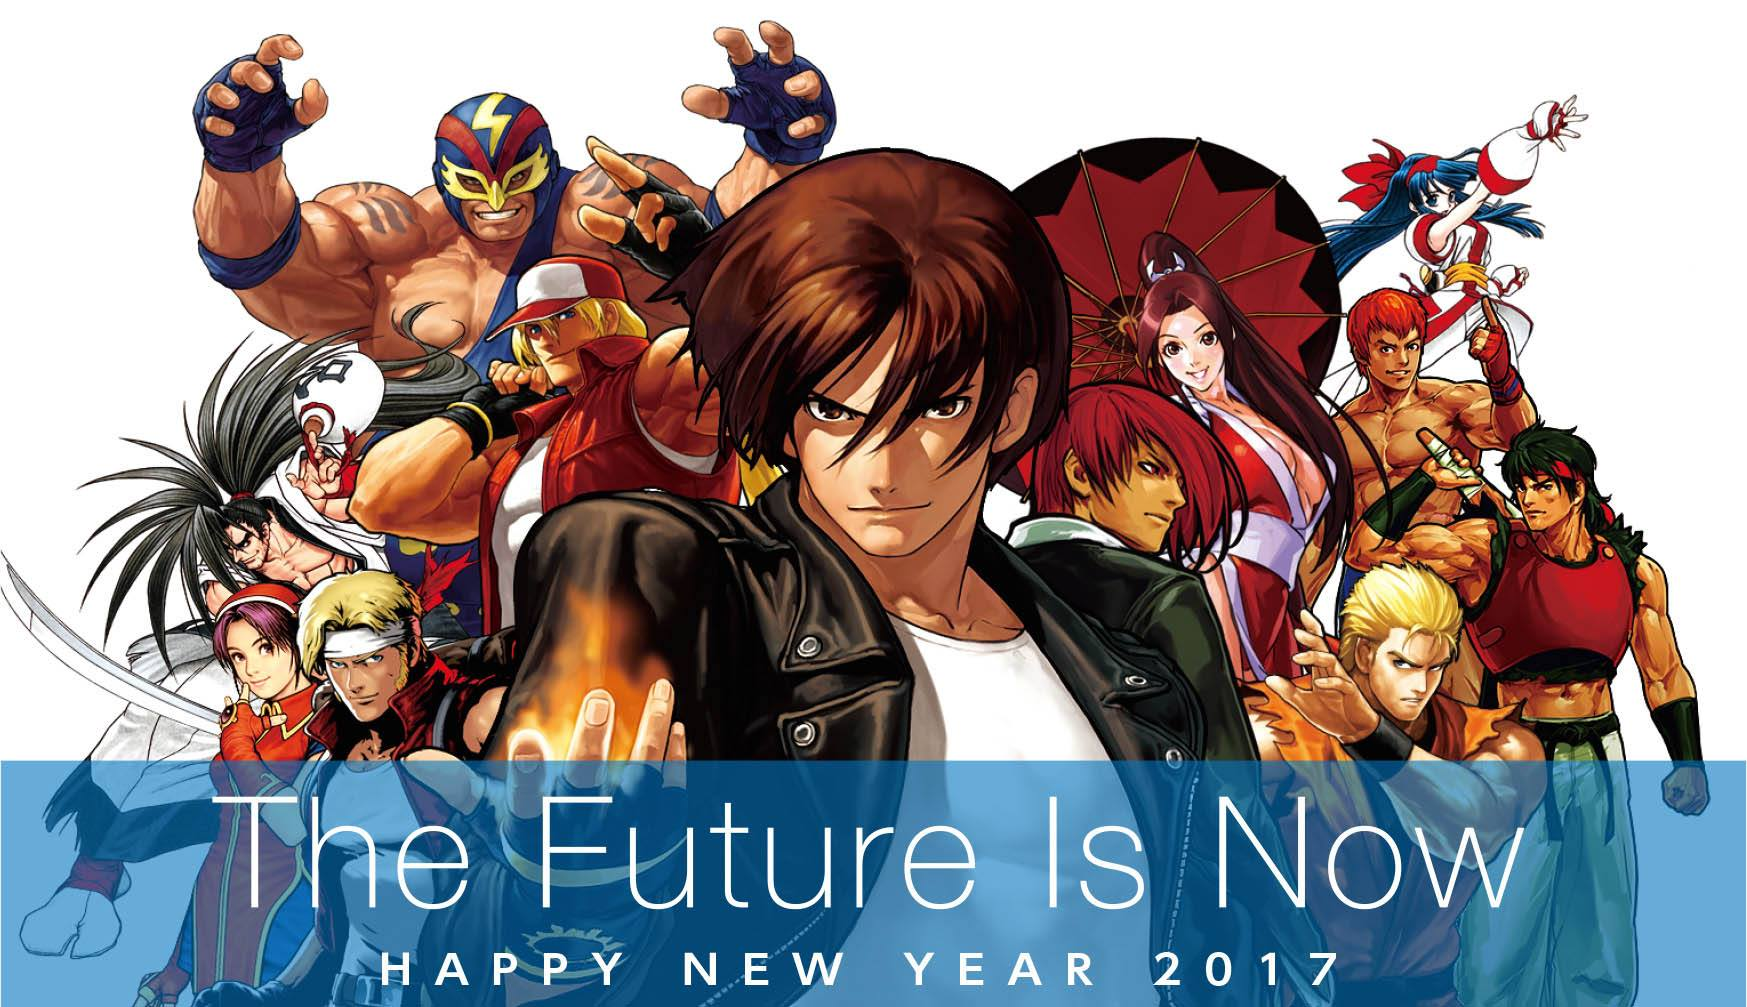 snk_happy_new_year_2017